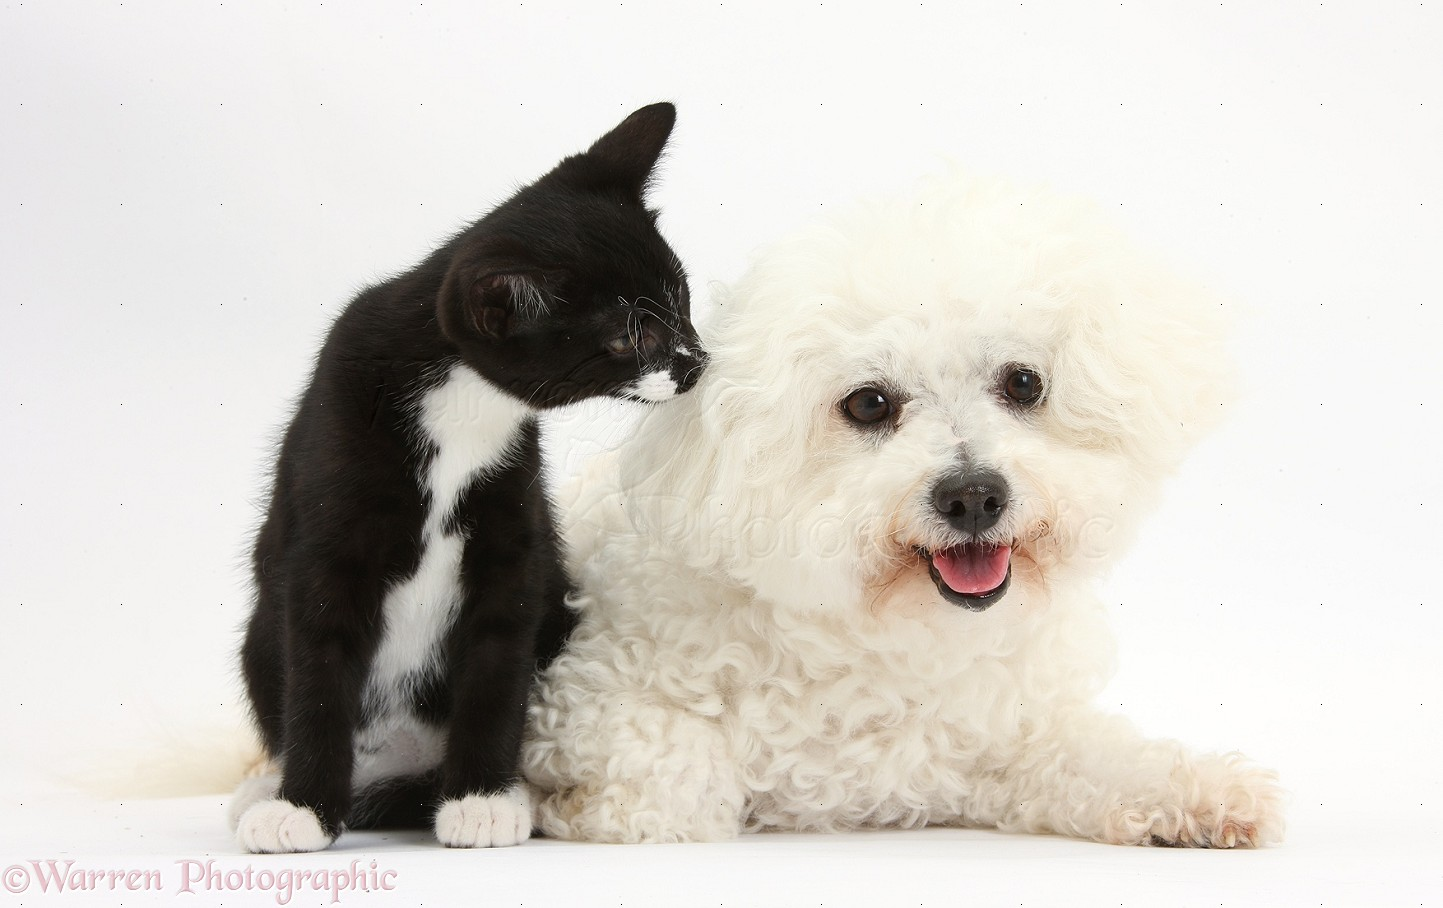 WP34109 Bichon Frisé bitch, Pipa , with black-and-white tuxedo kitten ...